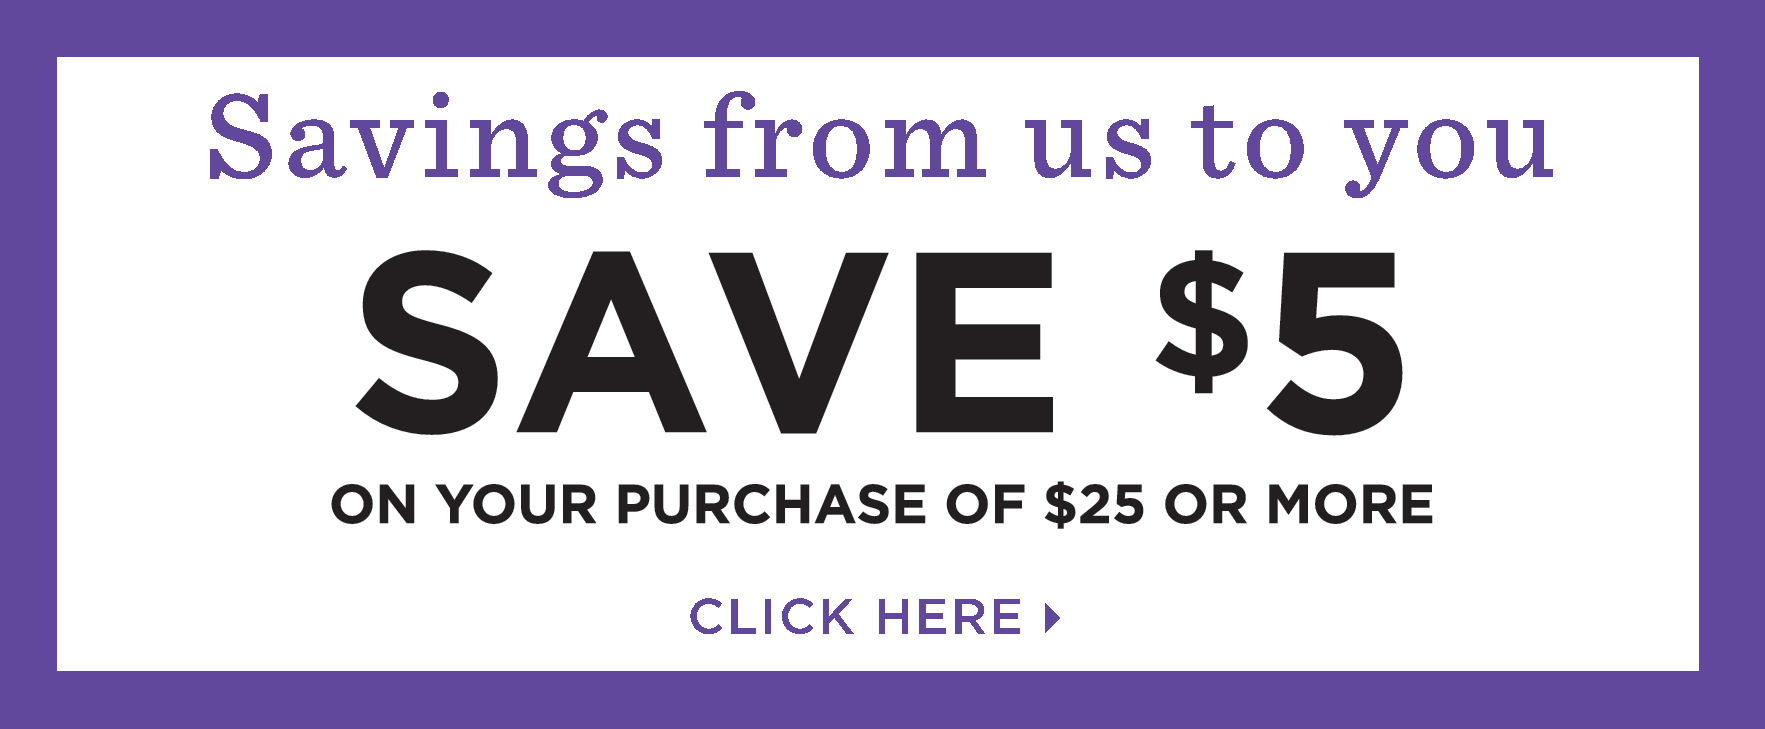 Save $5 on $25 Purchase